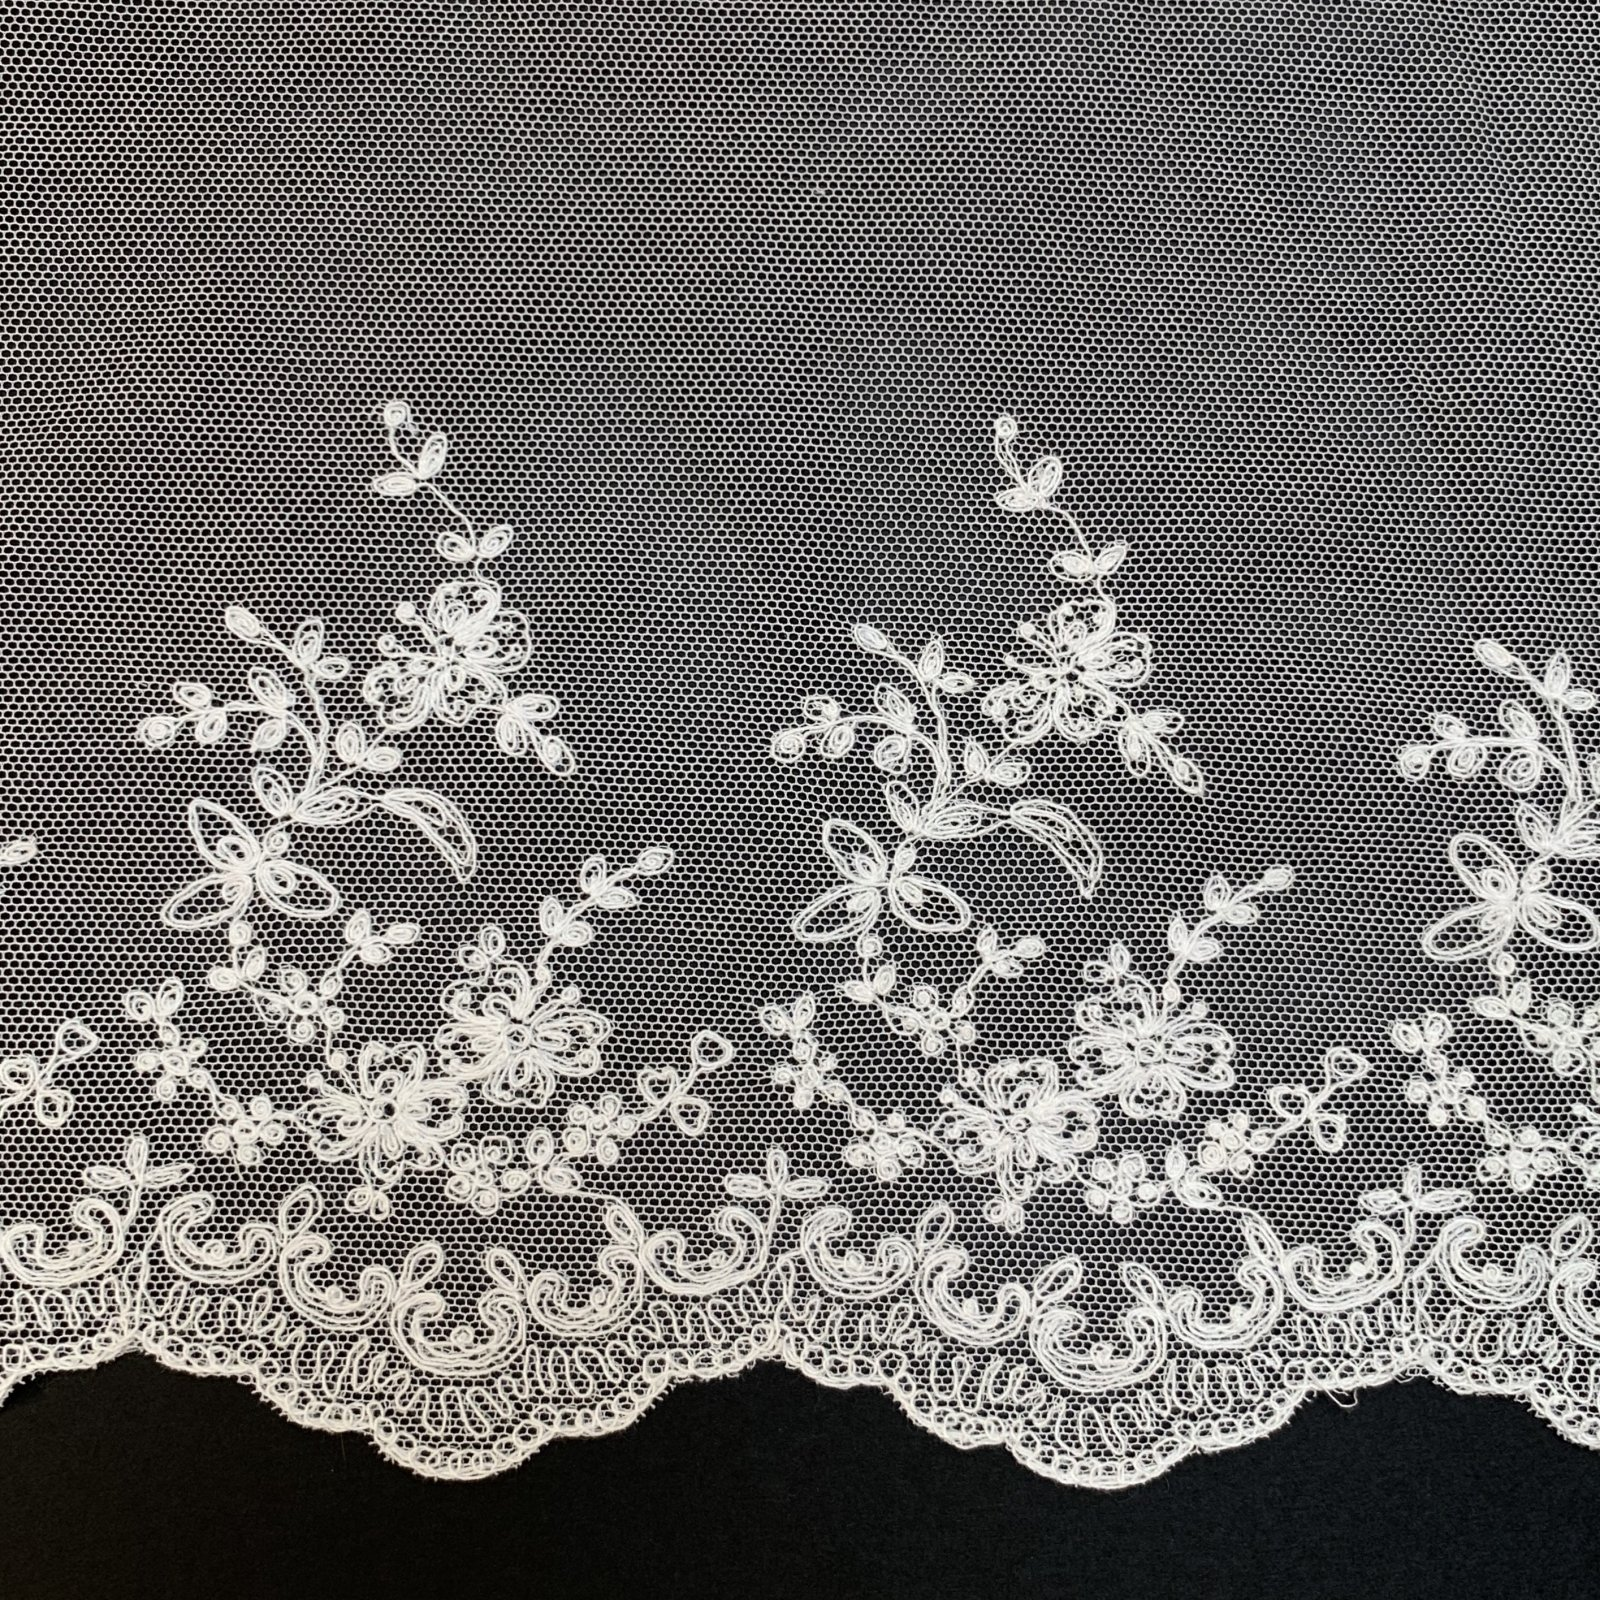 Netting Lace Edging 8 1/4 Inch Soft White 7027-8